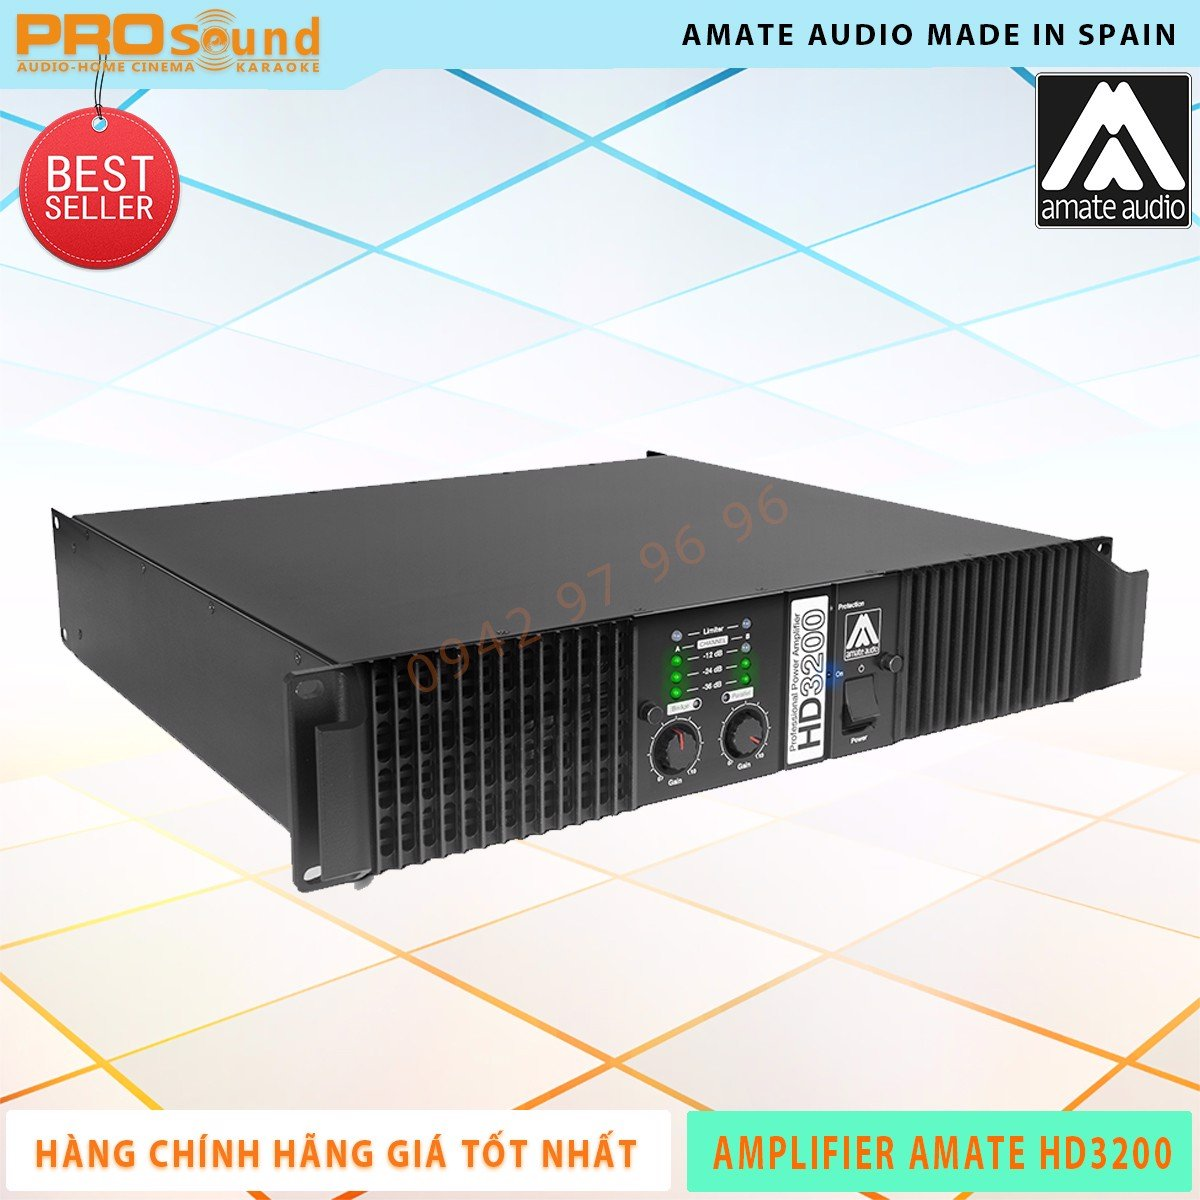 AMPLIFIER AMATE